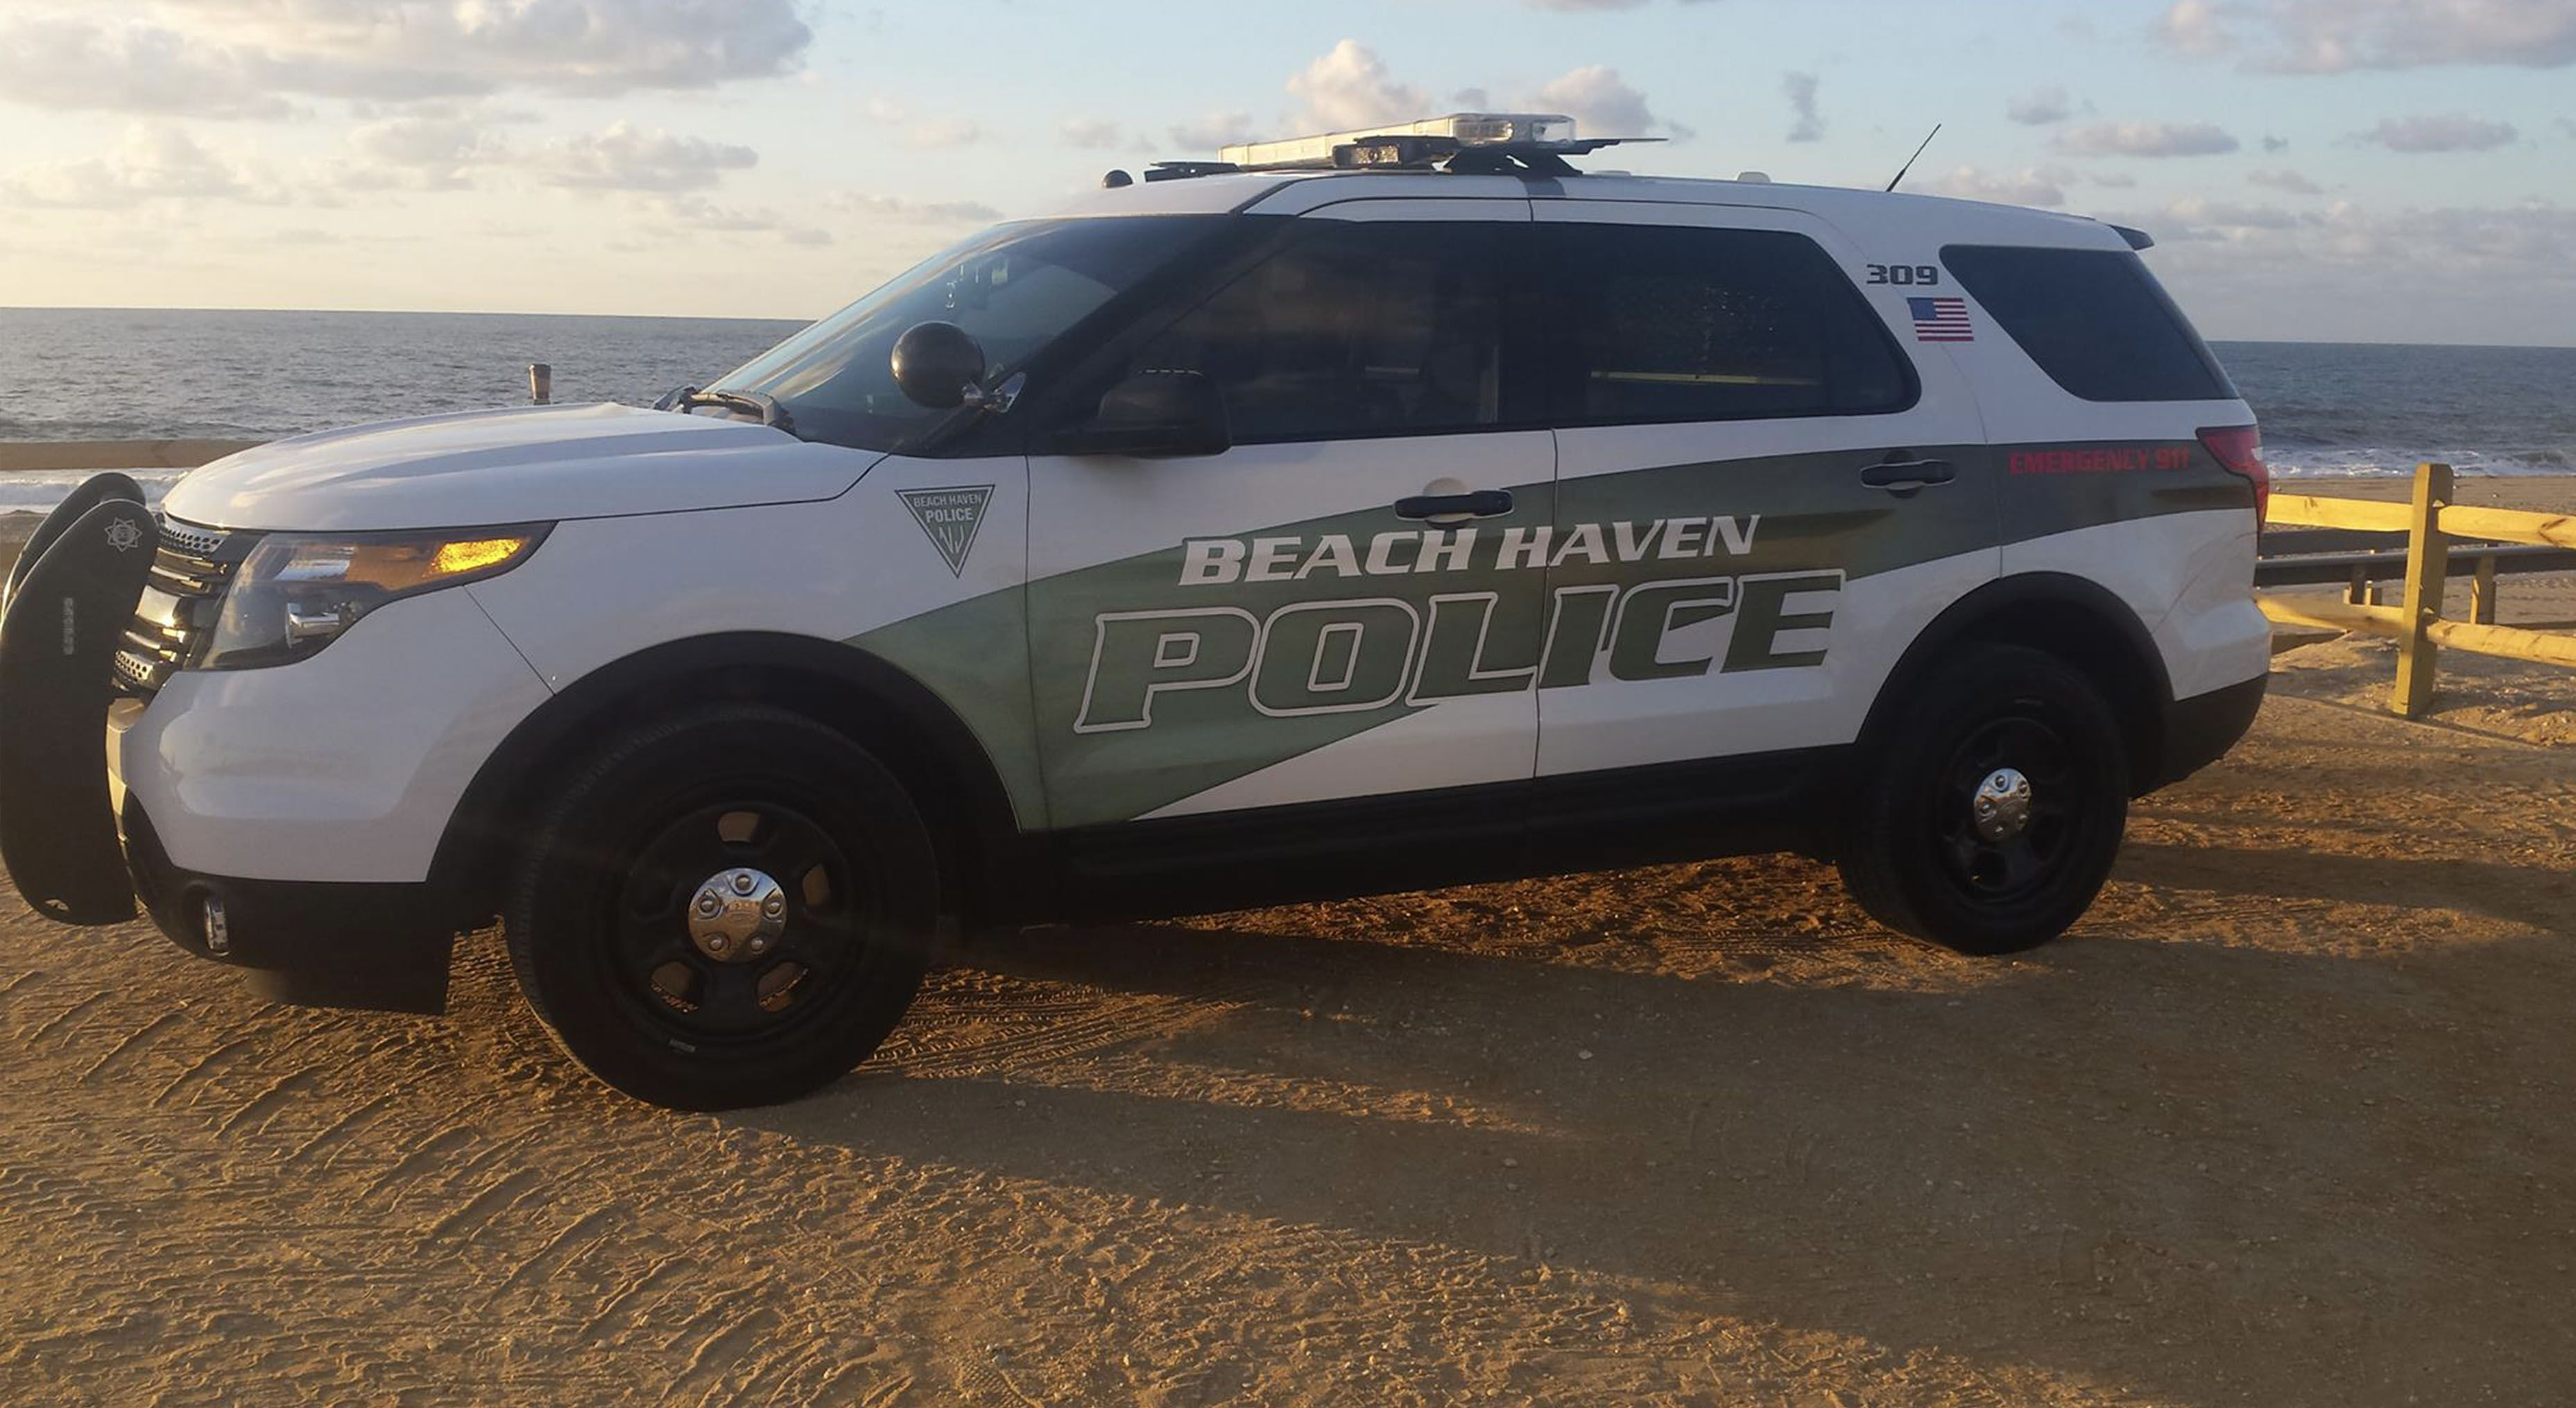 police department borough of beach haven